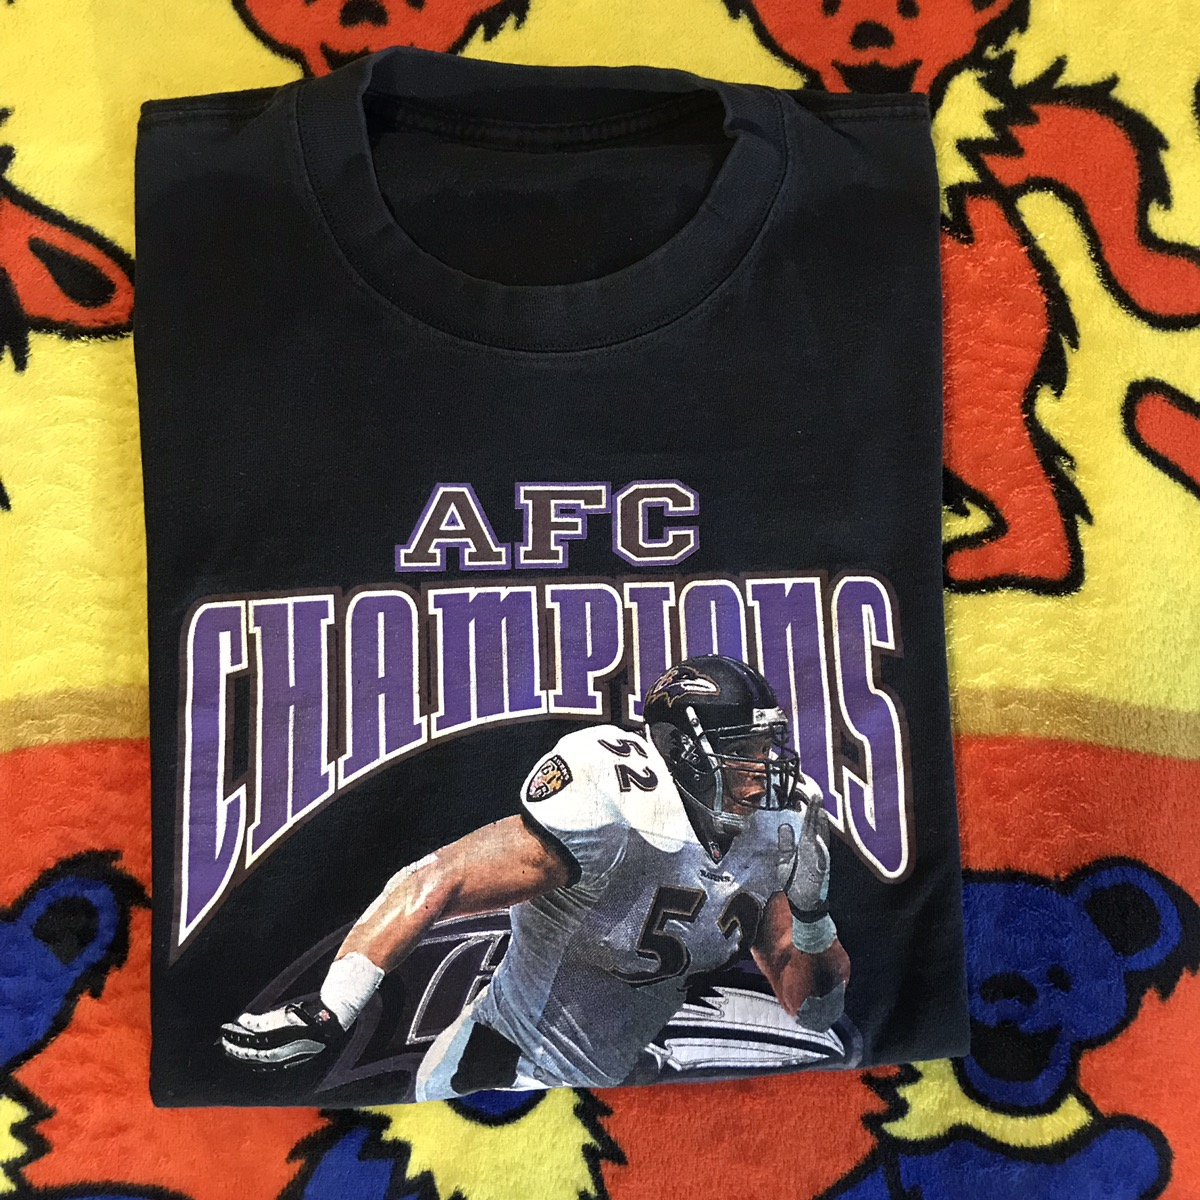 Baltimore Ravens AFC Year of Establishment T-Shirt XL